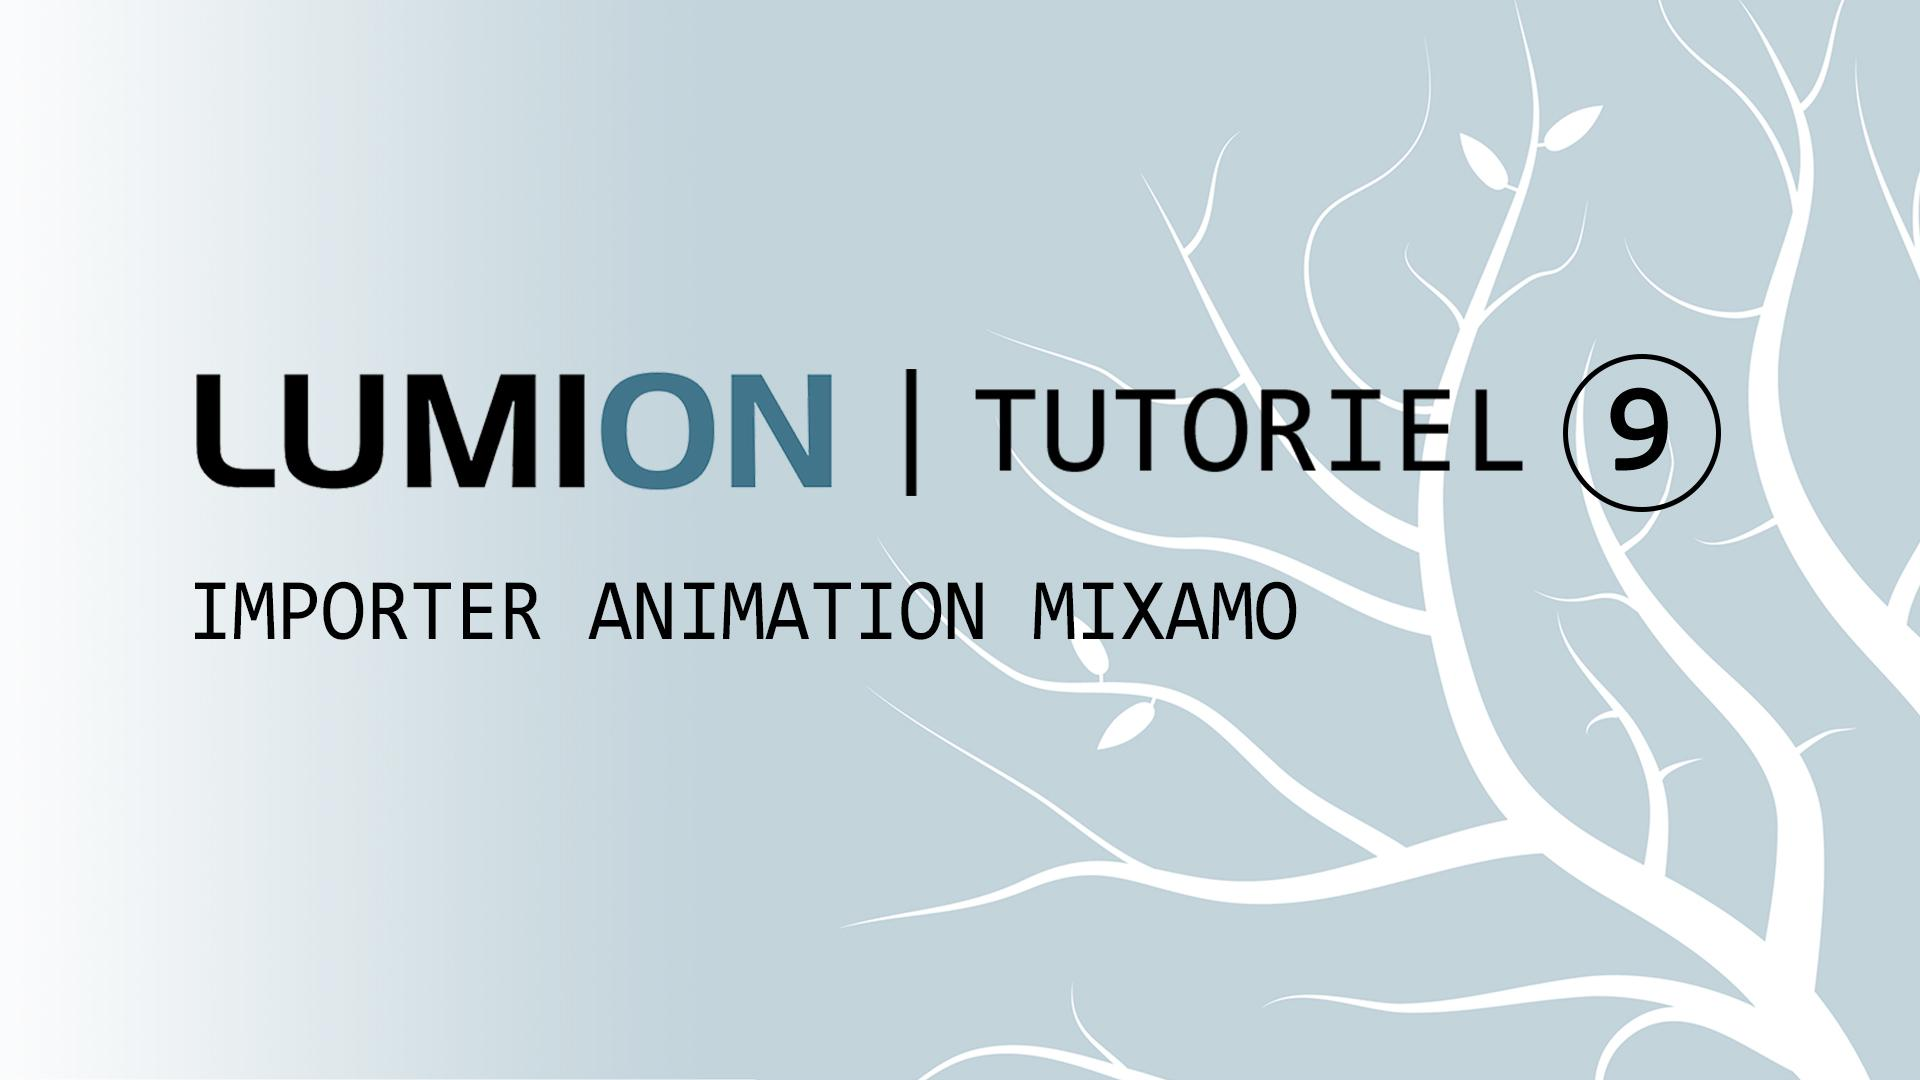 Tutoriel 9 : Importer animation Mixamo